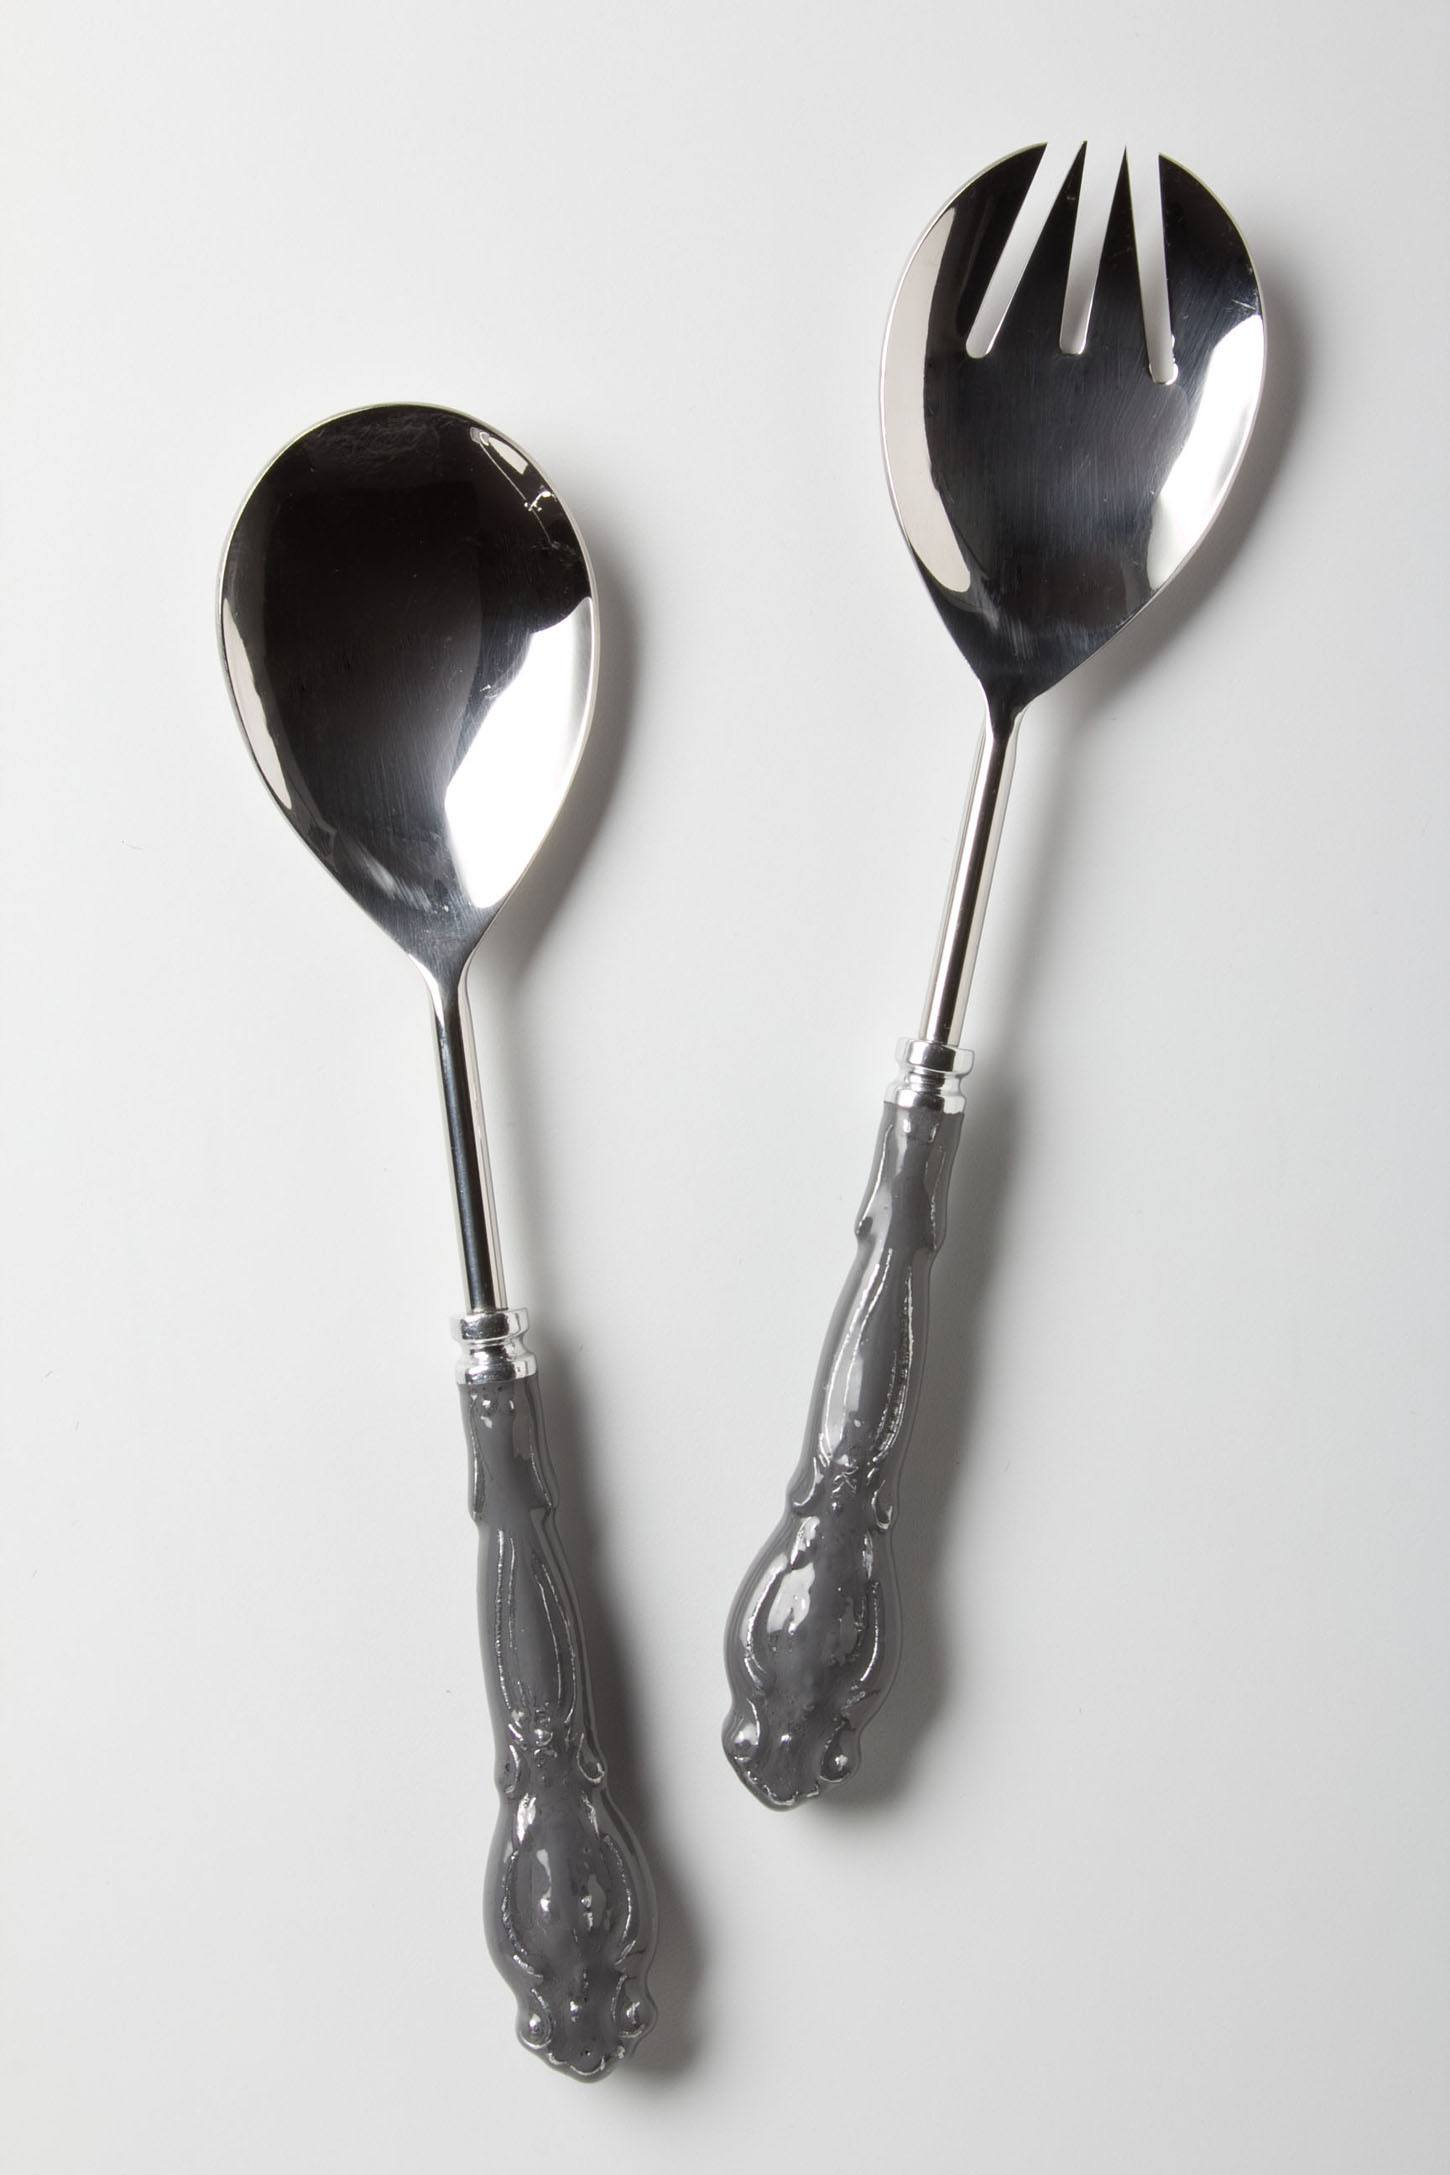 Chipper & Sprite Serving Set